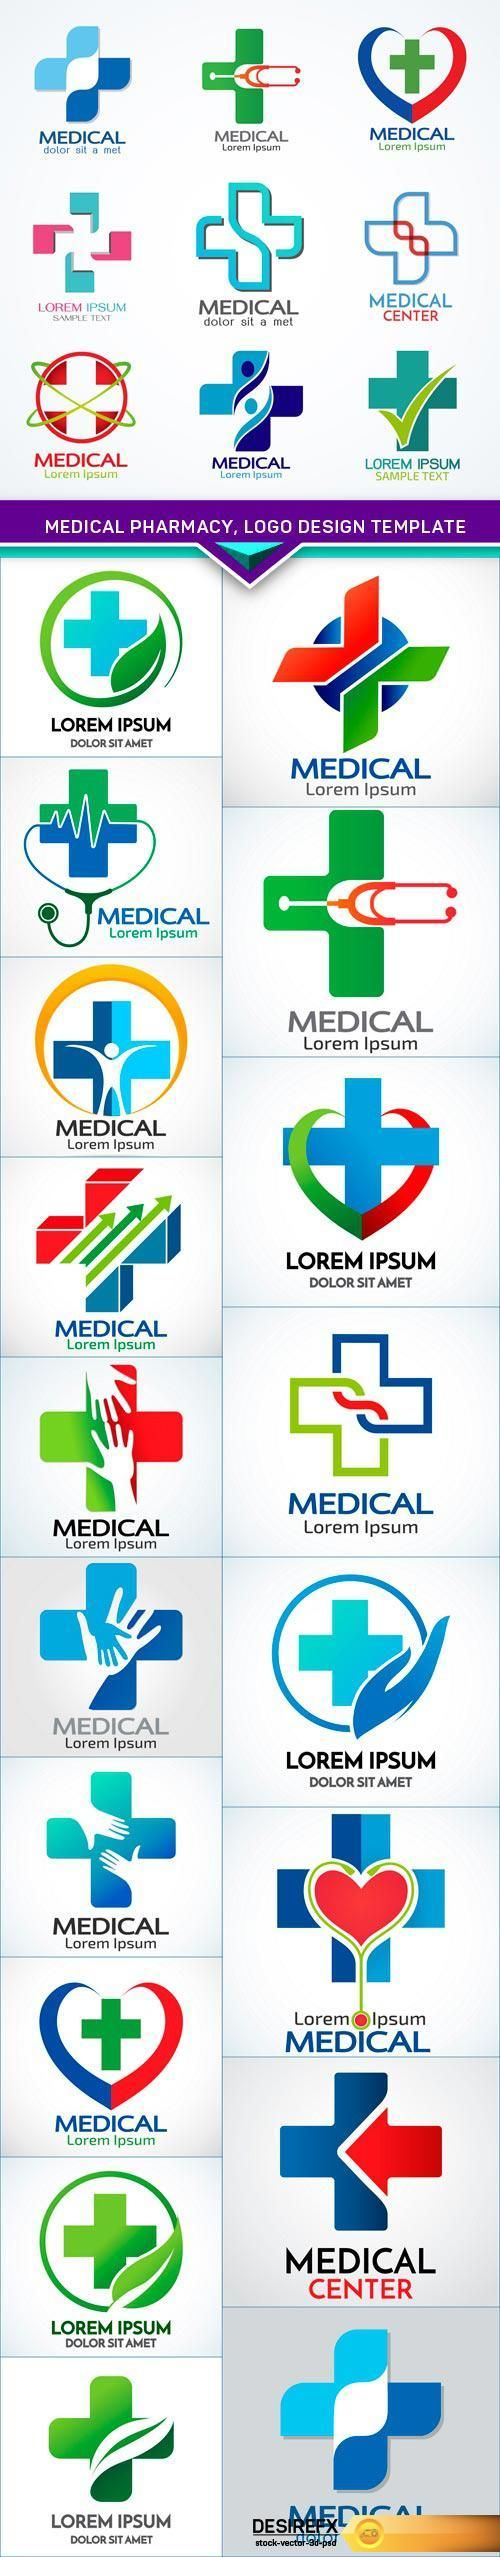 Healthcare clipart medical specialty. Best marketing images